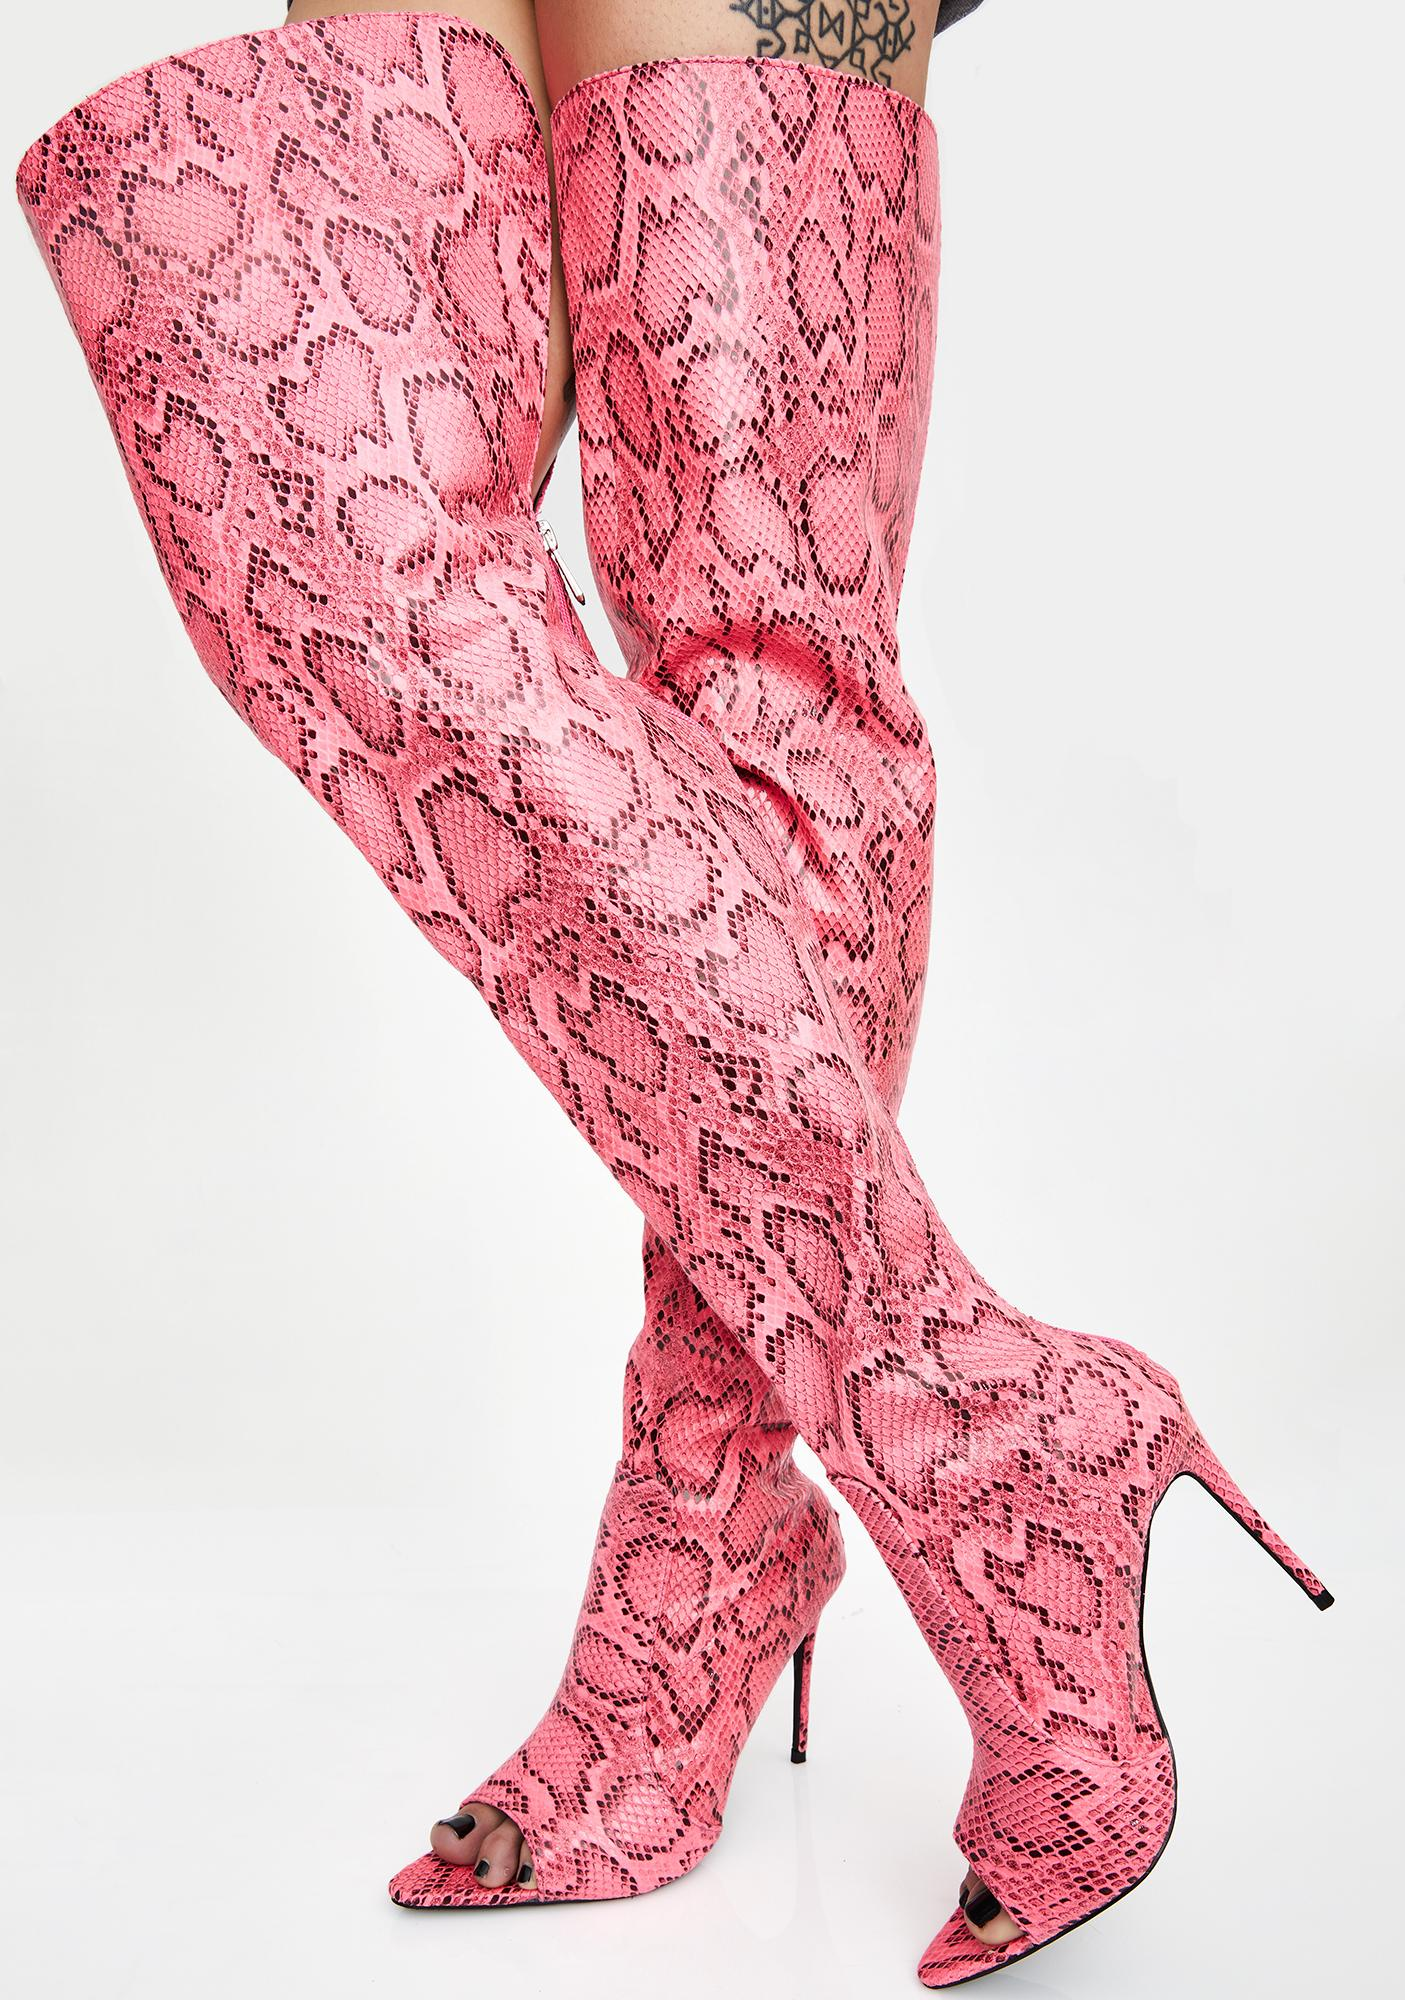 Pixie Toxic Heart Thigh High Boots